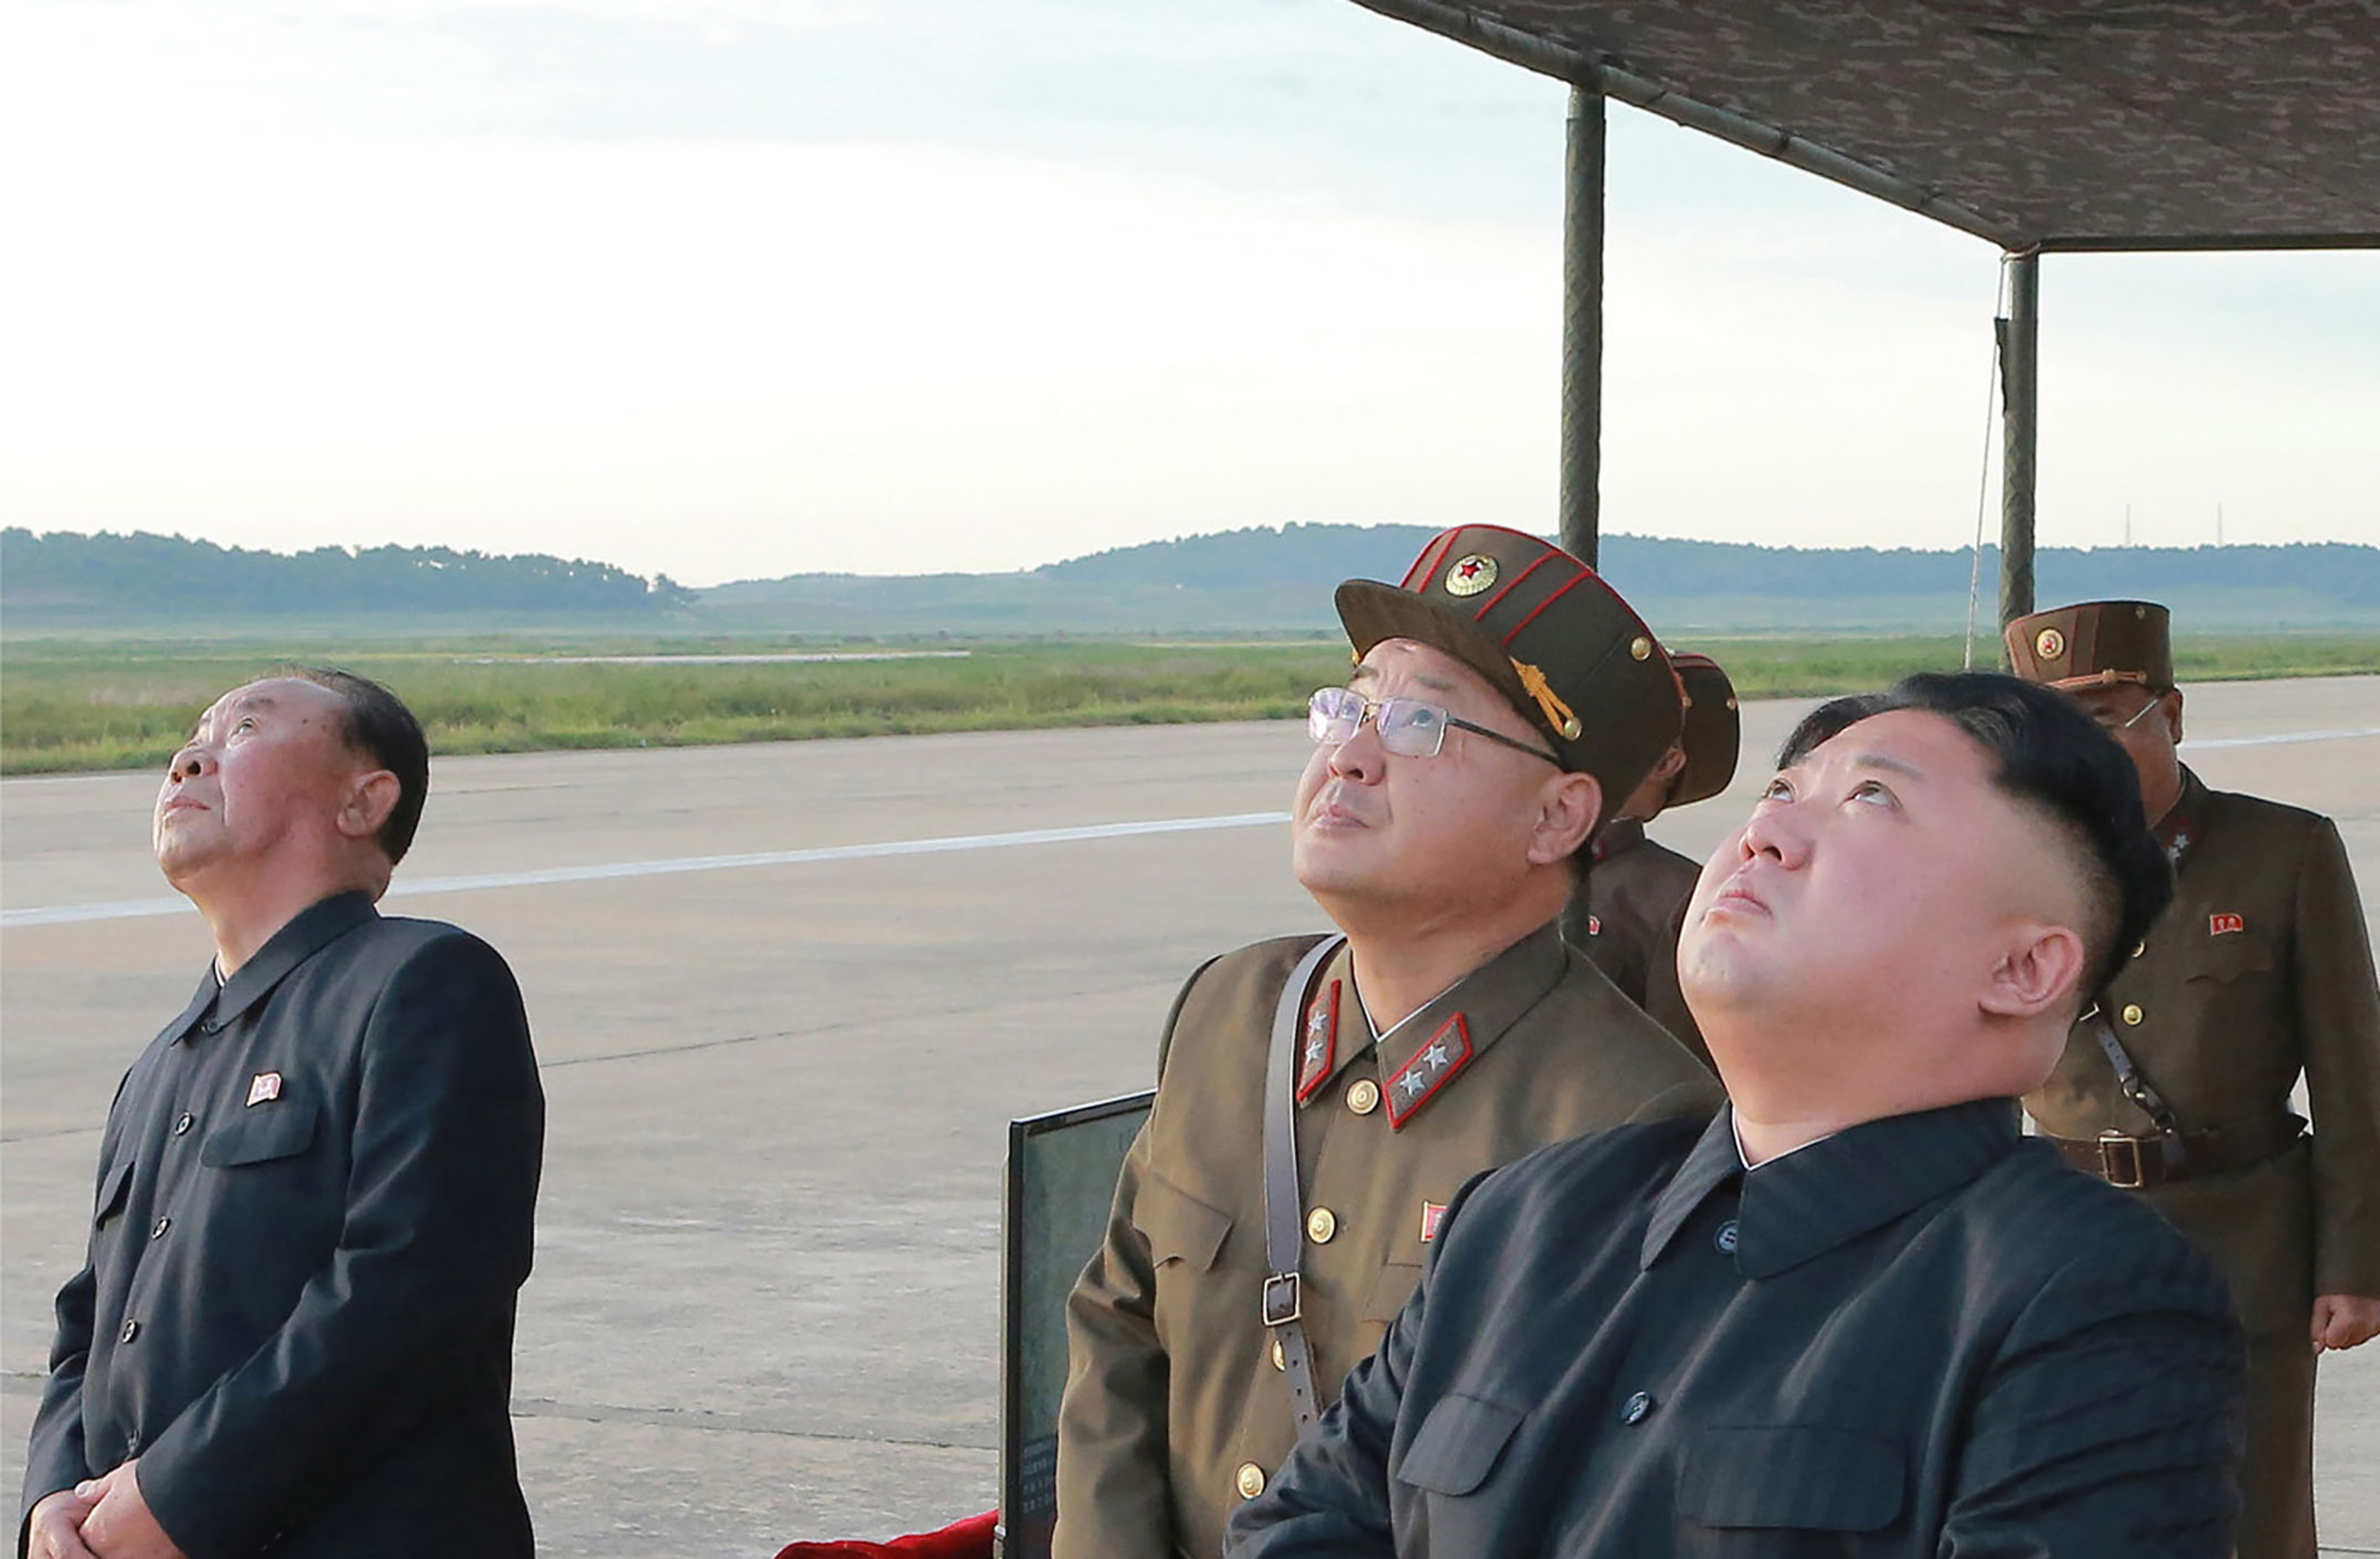 Kim Jong-un of North Korea looks up alongside military personnel in undated photo